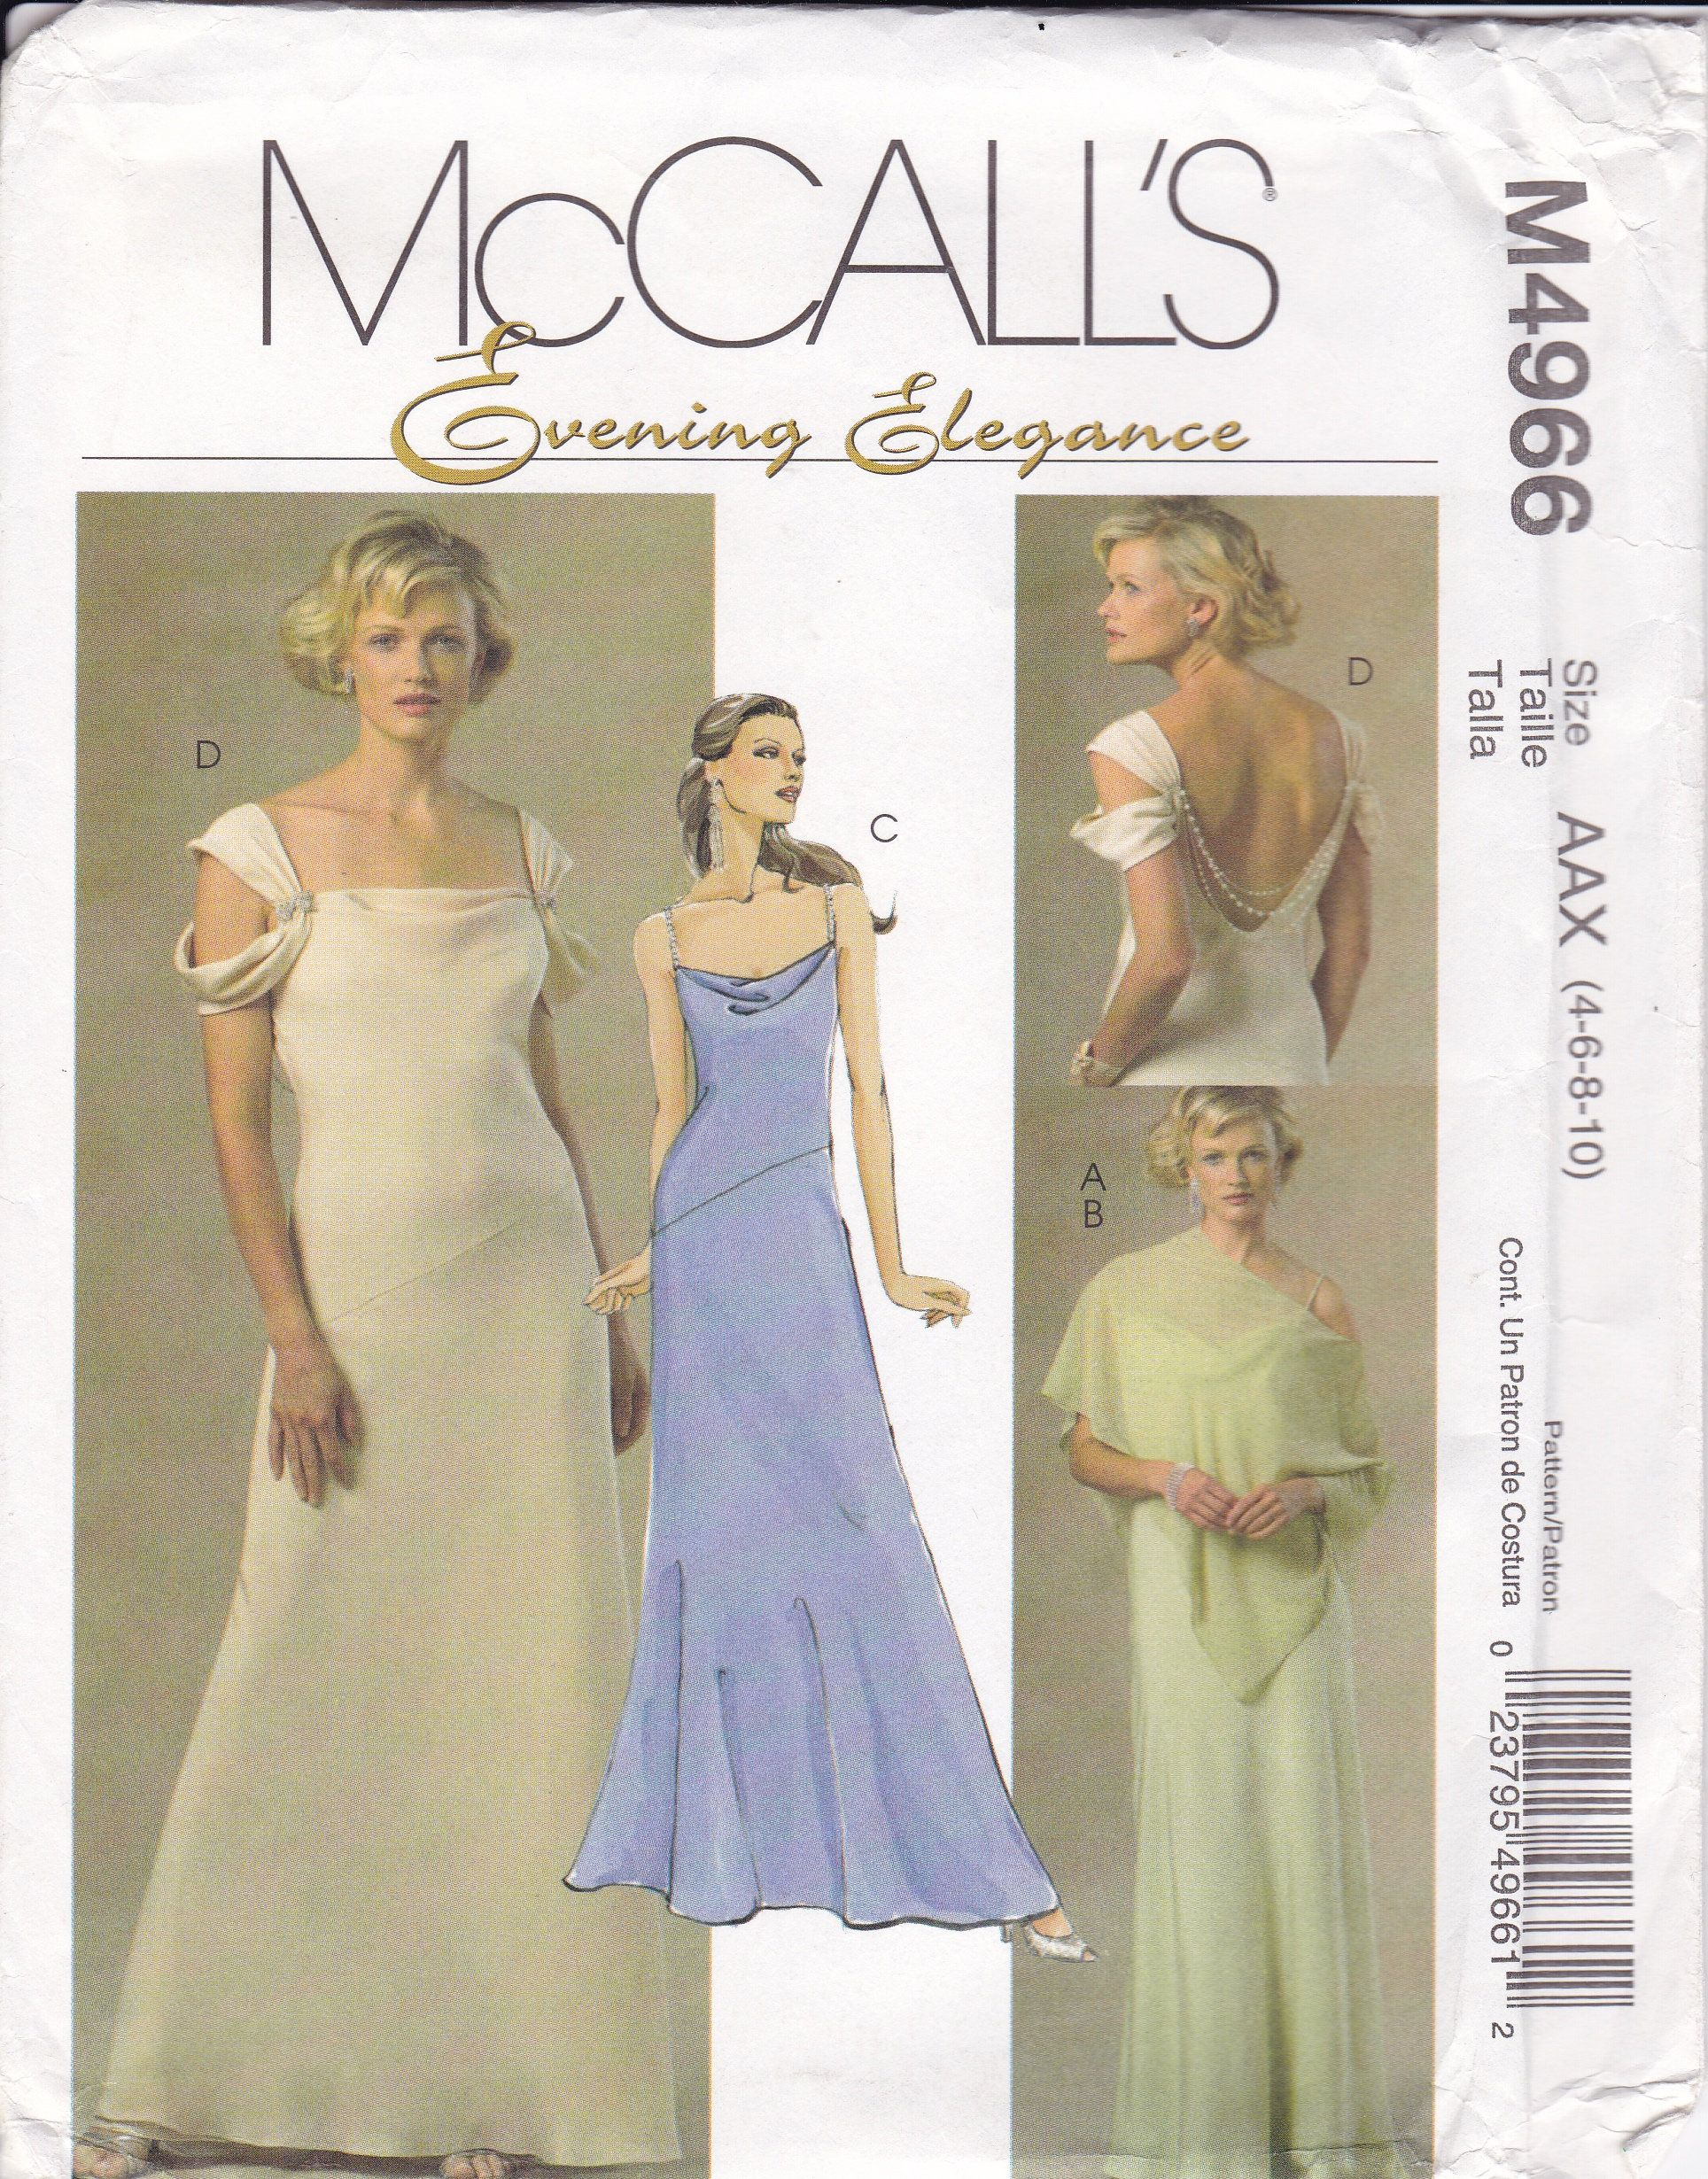 Free Us Ship Mccall S 4966 Evening Elegance Dress Capelet Poncho Wedding Prom Sewing Pattern Size 4 6 Wedding Dress Sewing Patterns Gown Sewing Pattern Dresses [ 2460 x 1928 Pixel ]